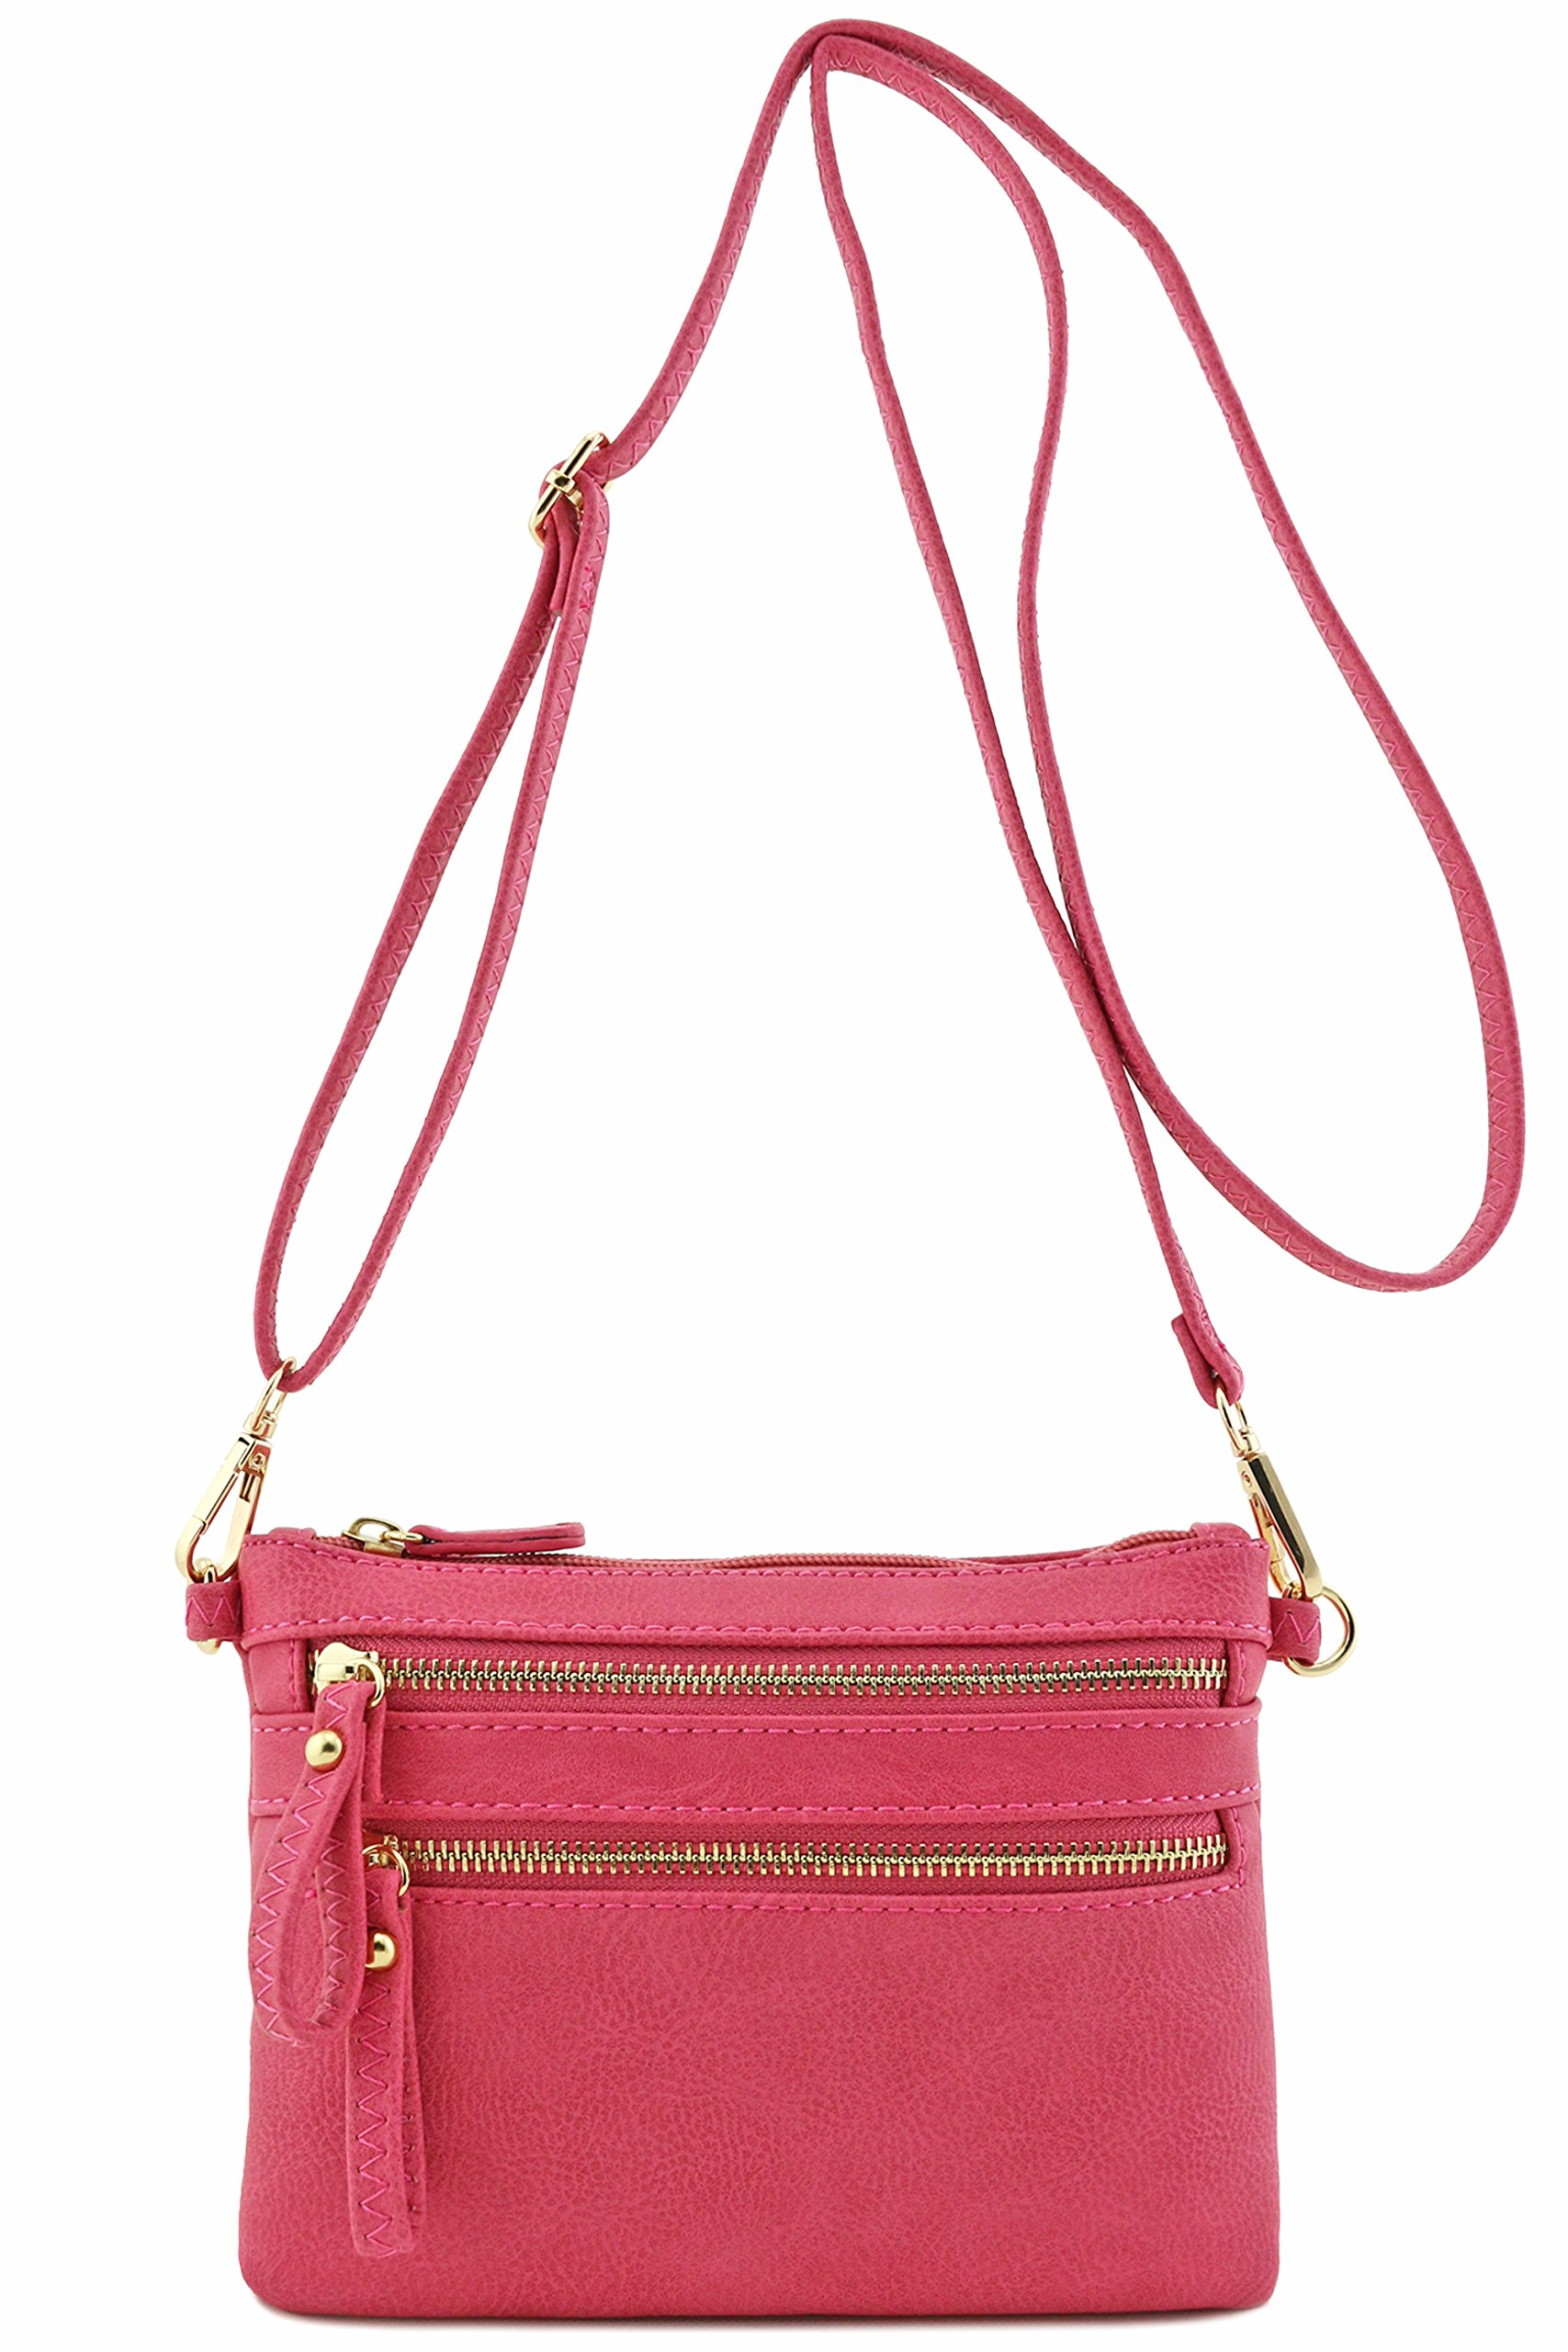 Multi Zipper Pocket Small Wristlet Crossbody Bag (Raspberry)